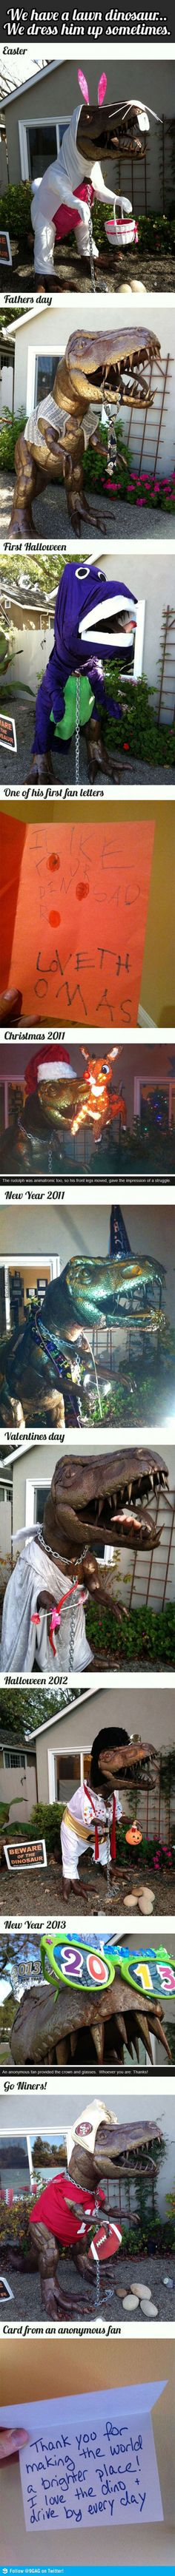 Dug The T-Rex--I want this in my yard!!